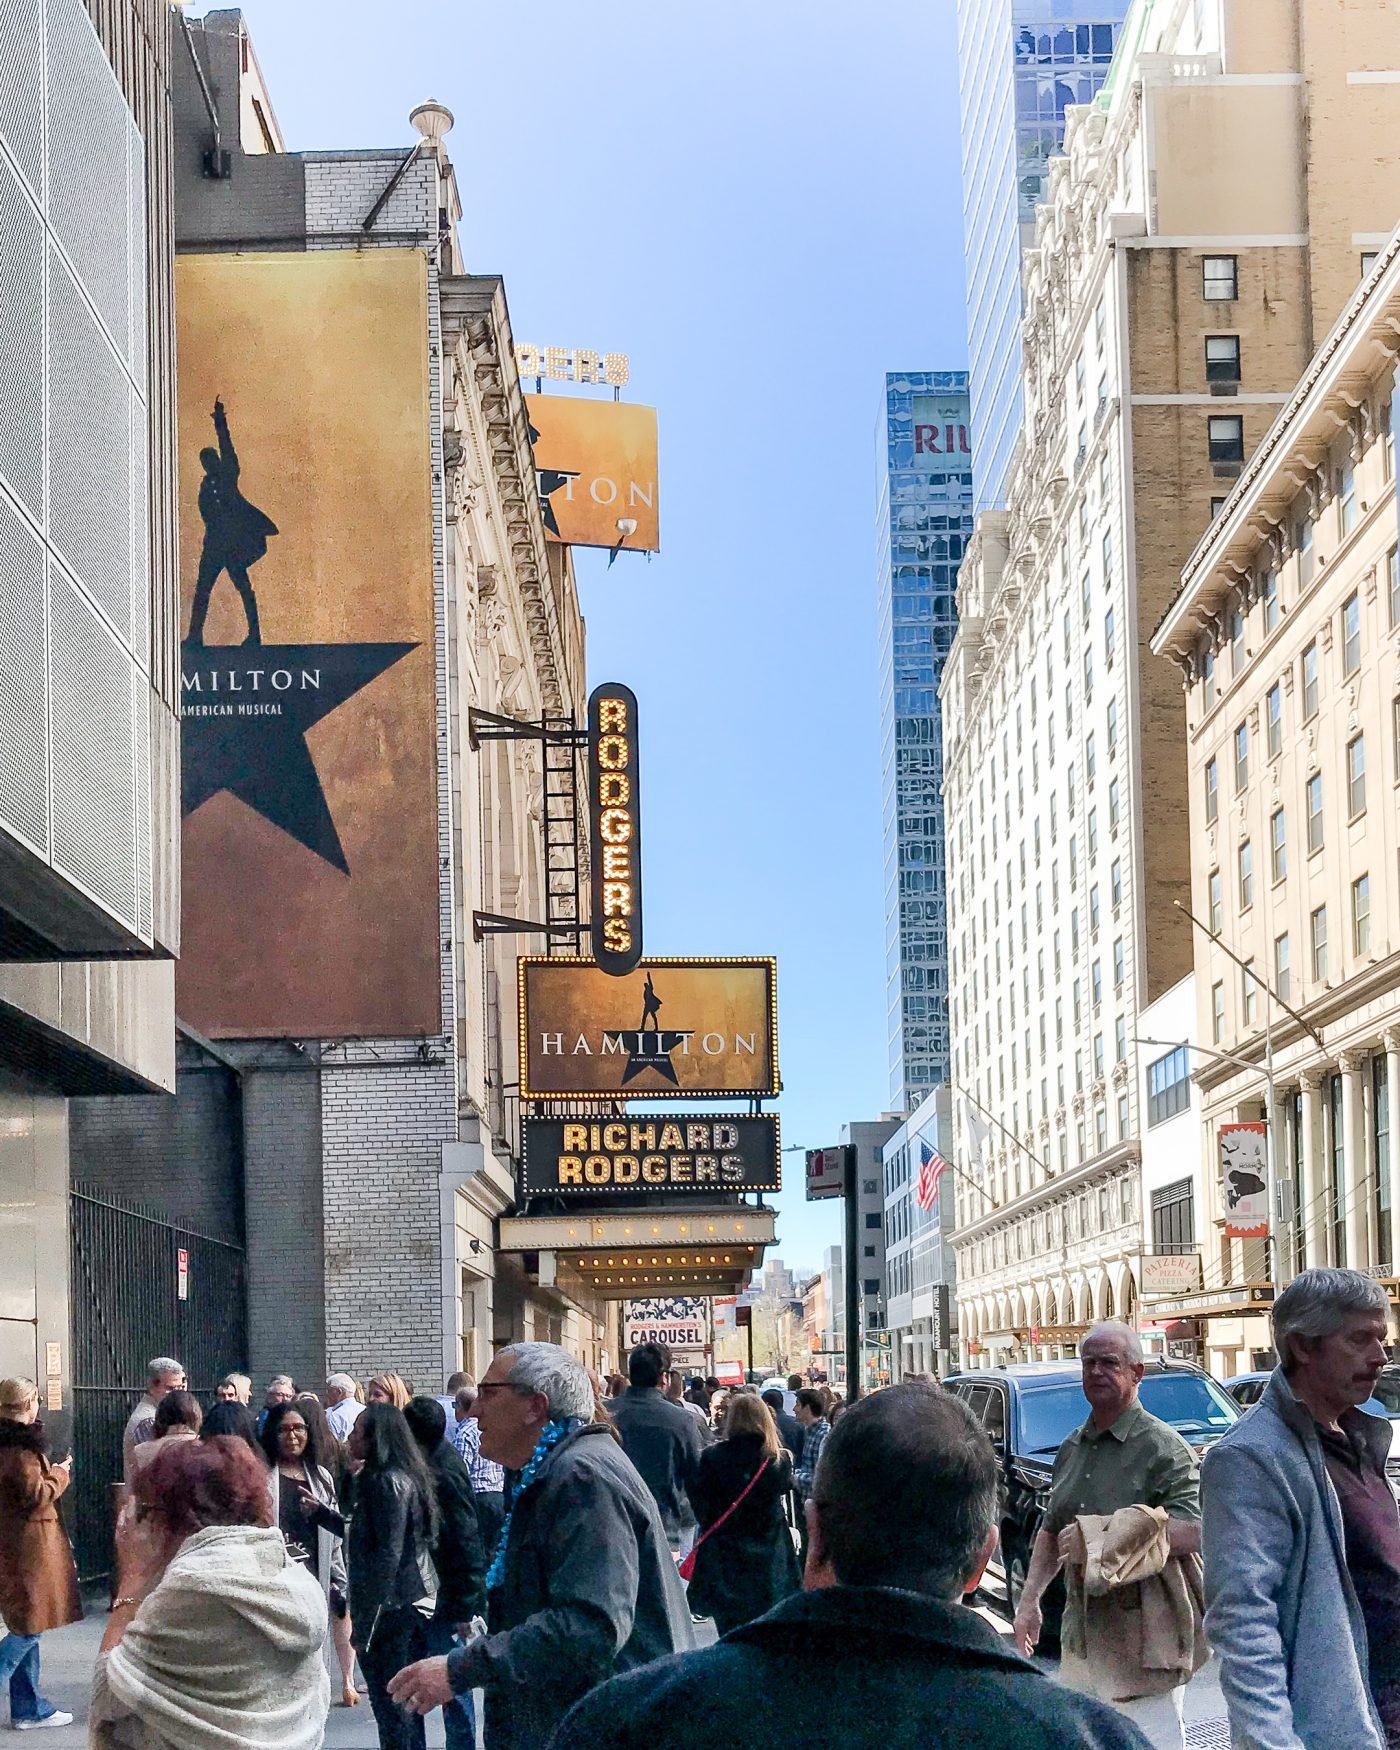 Hamilton on Broadway in NYC